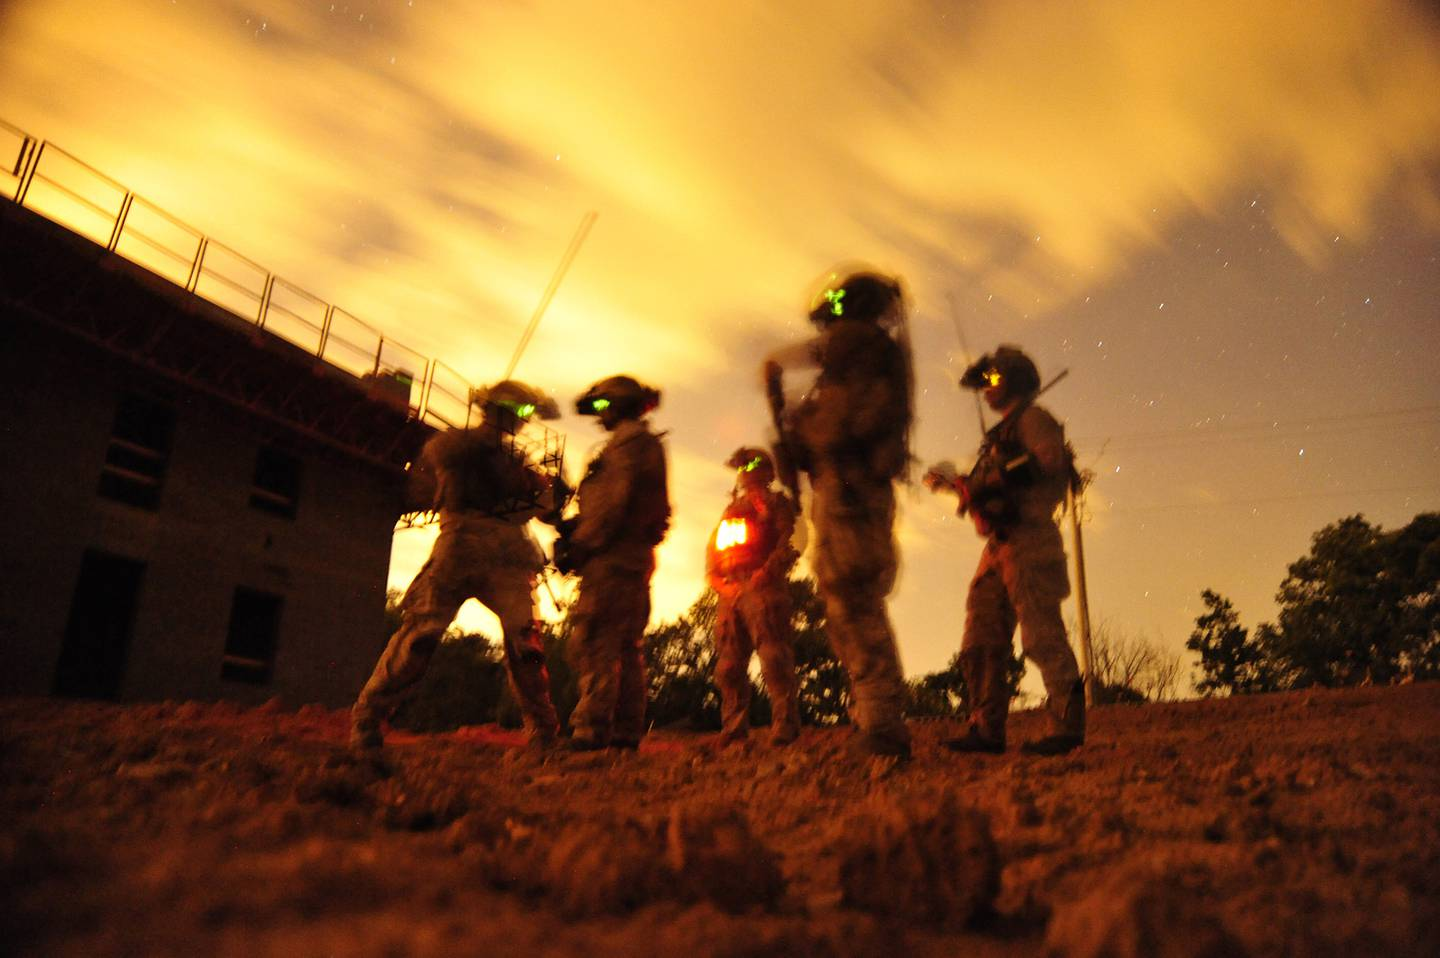 In this 2012 photo made available by the U.S. Navy, a squad of Navy SEALs participate in special operations urban combat training at an undisclosed location.